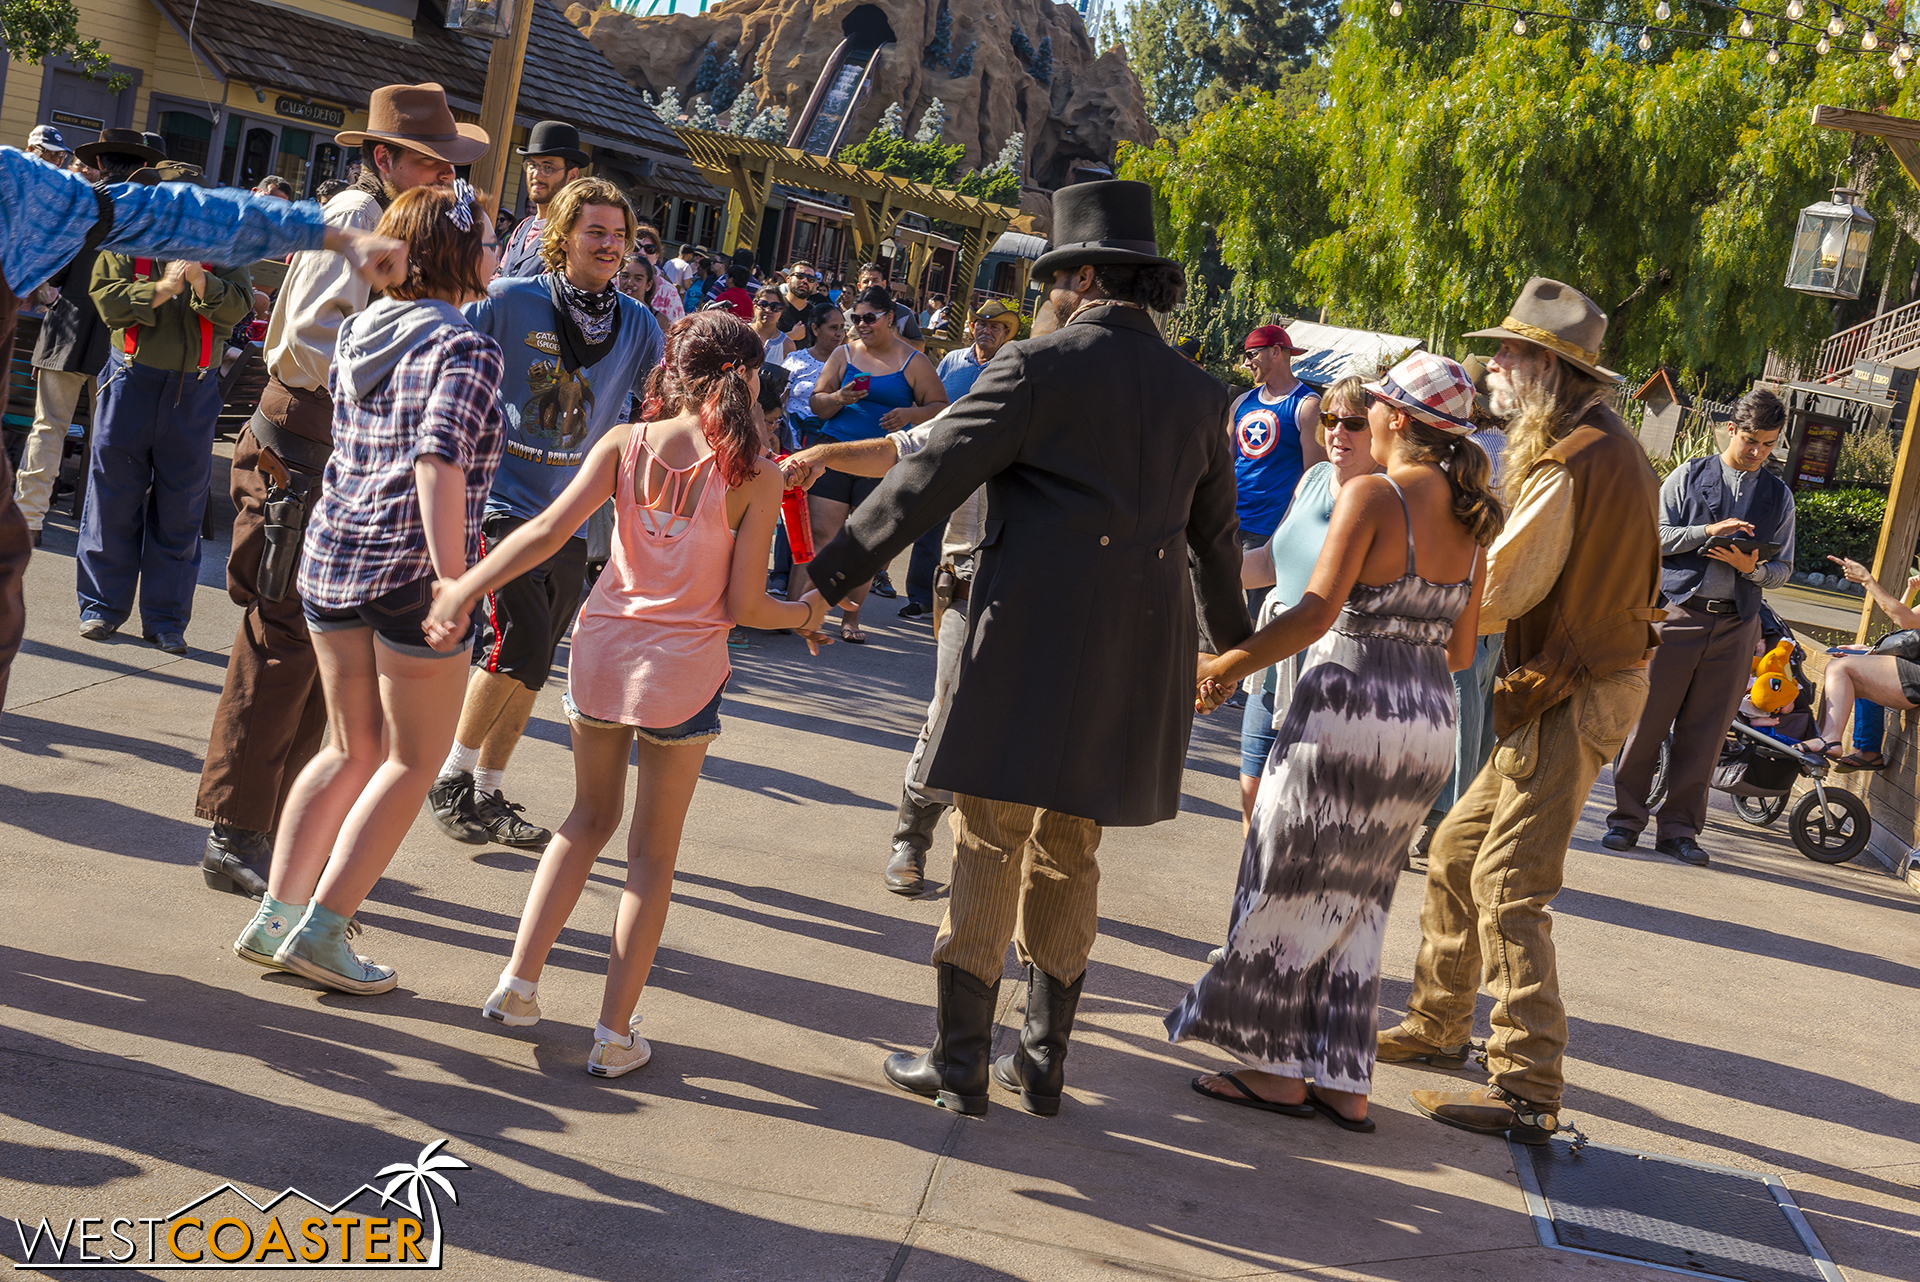 The Founder's Day celebration brings Citizens of Calico and guests together in dancing affair.